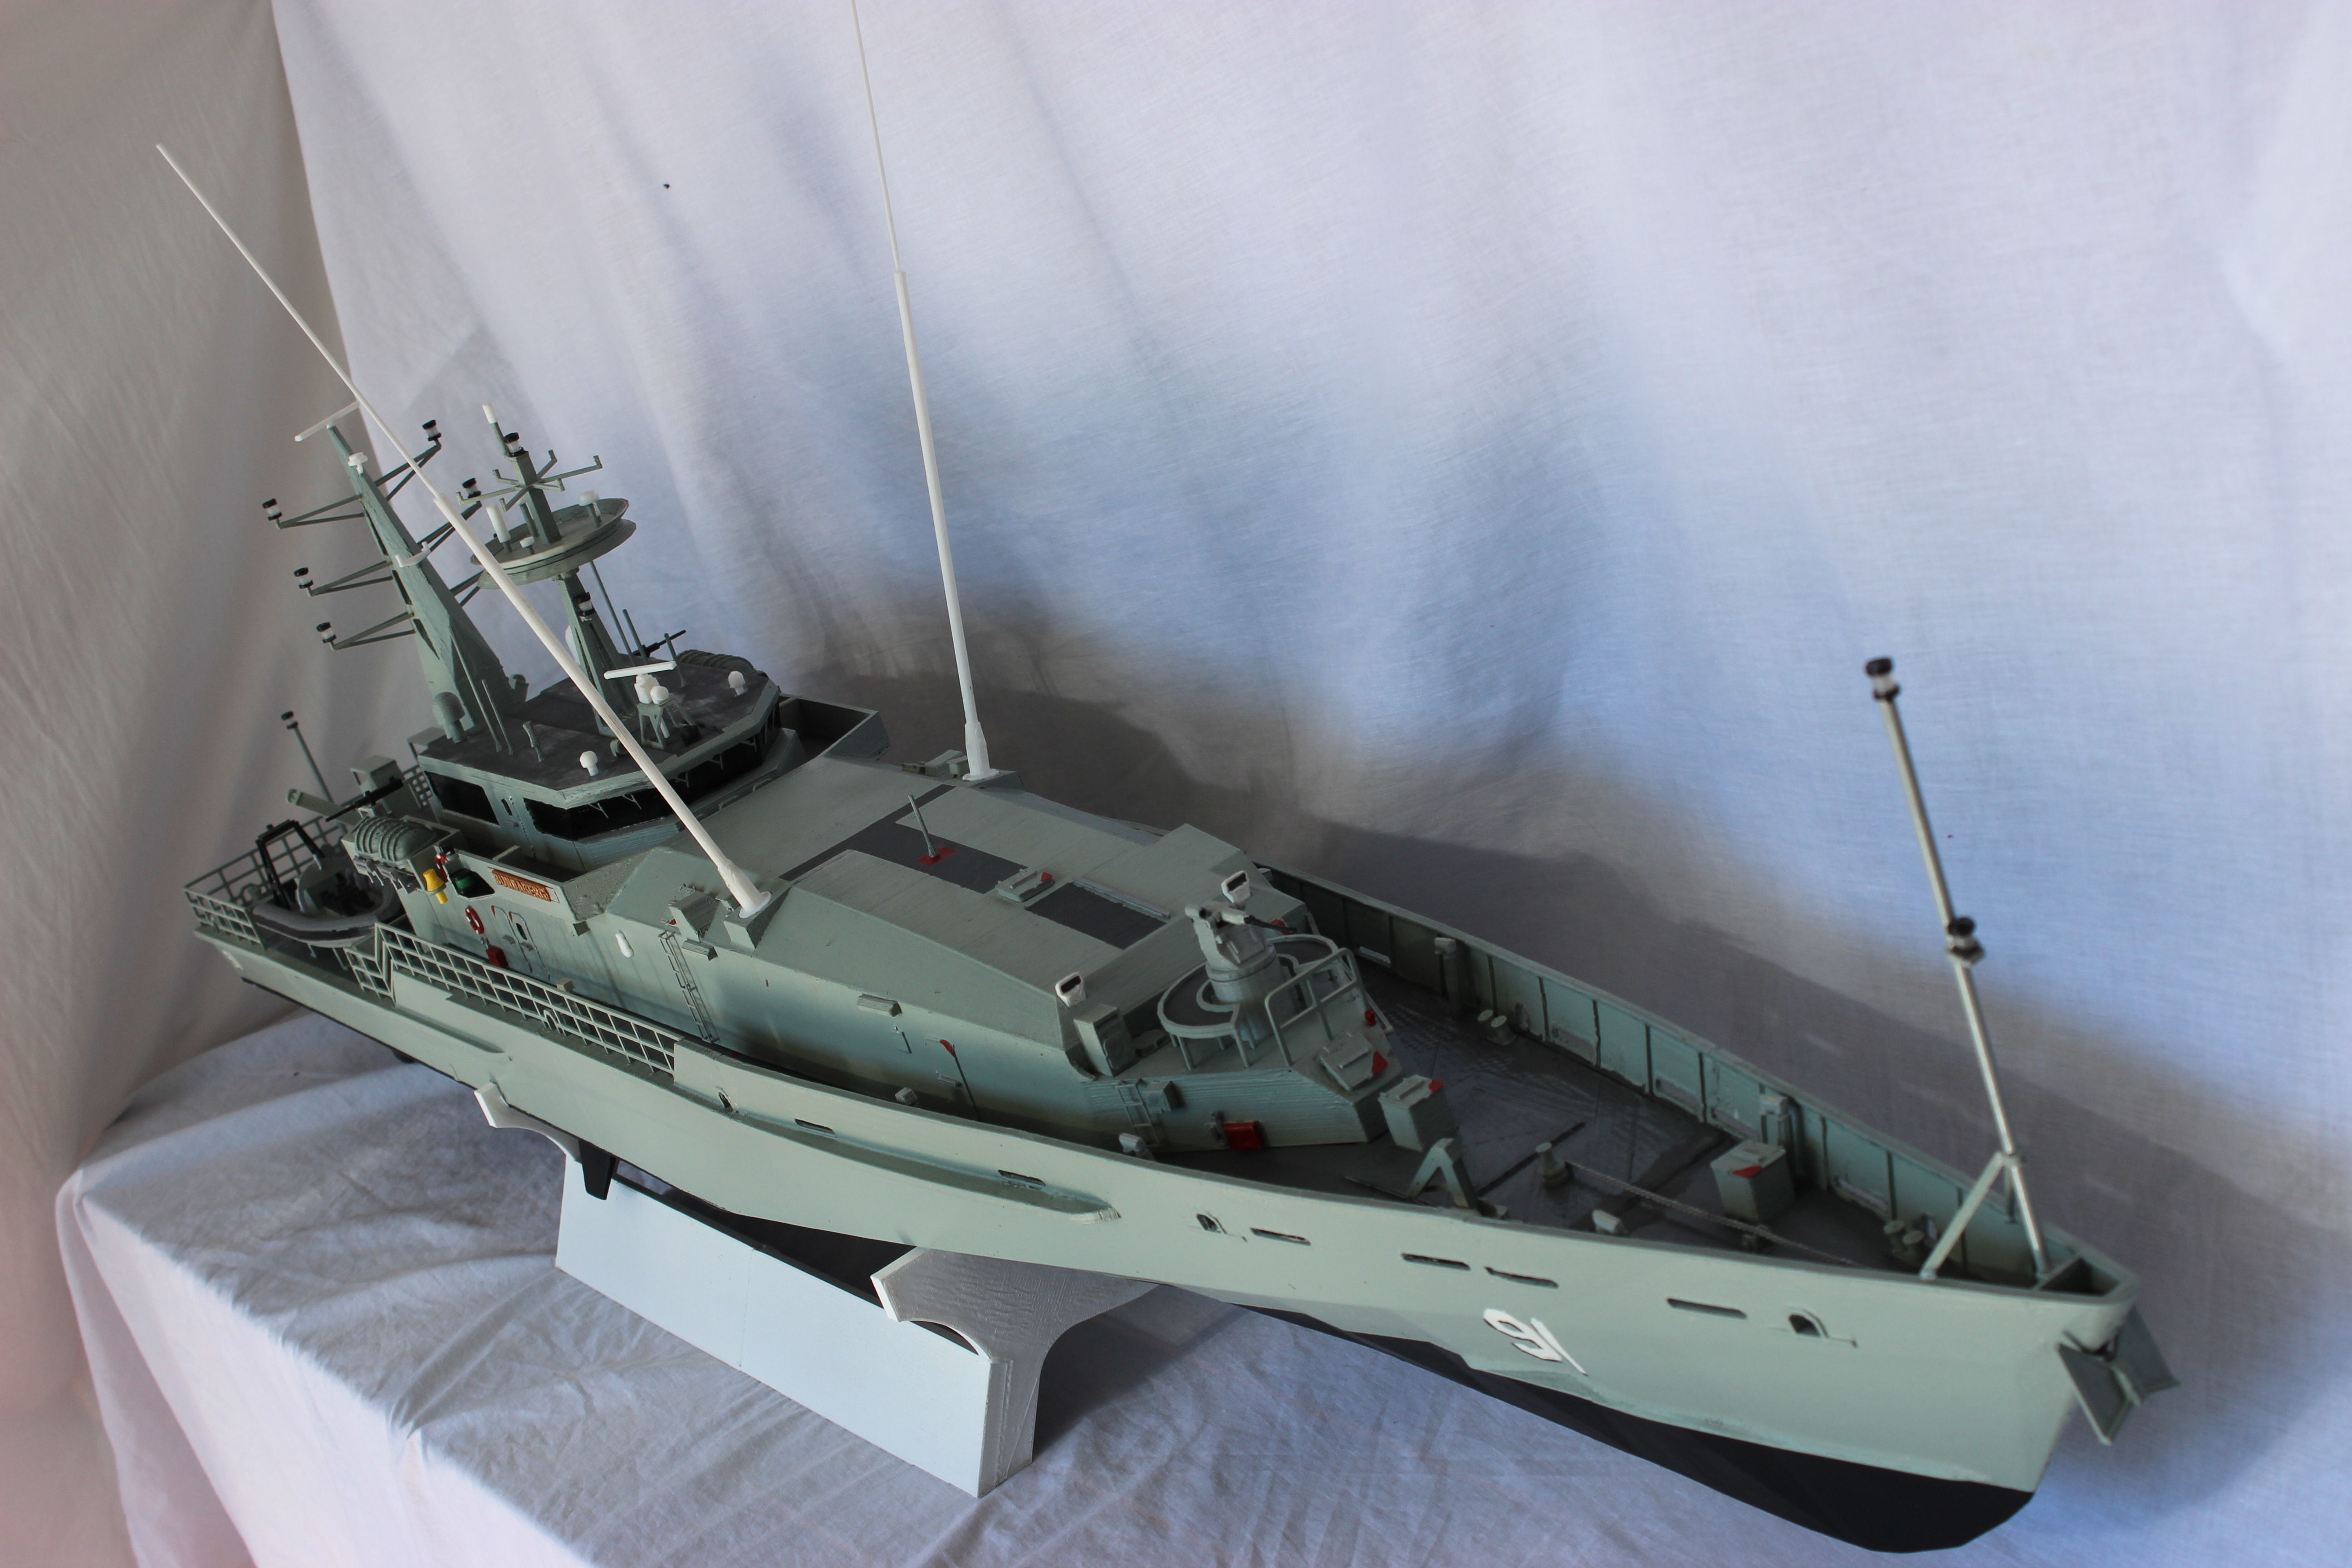 48th scale Remote Controlled Armidale Class Patrol Boat